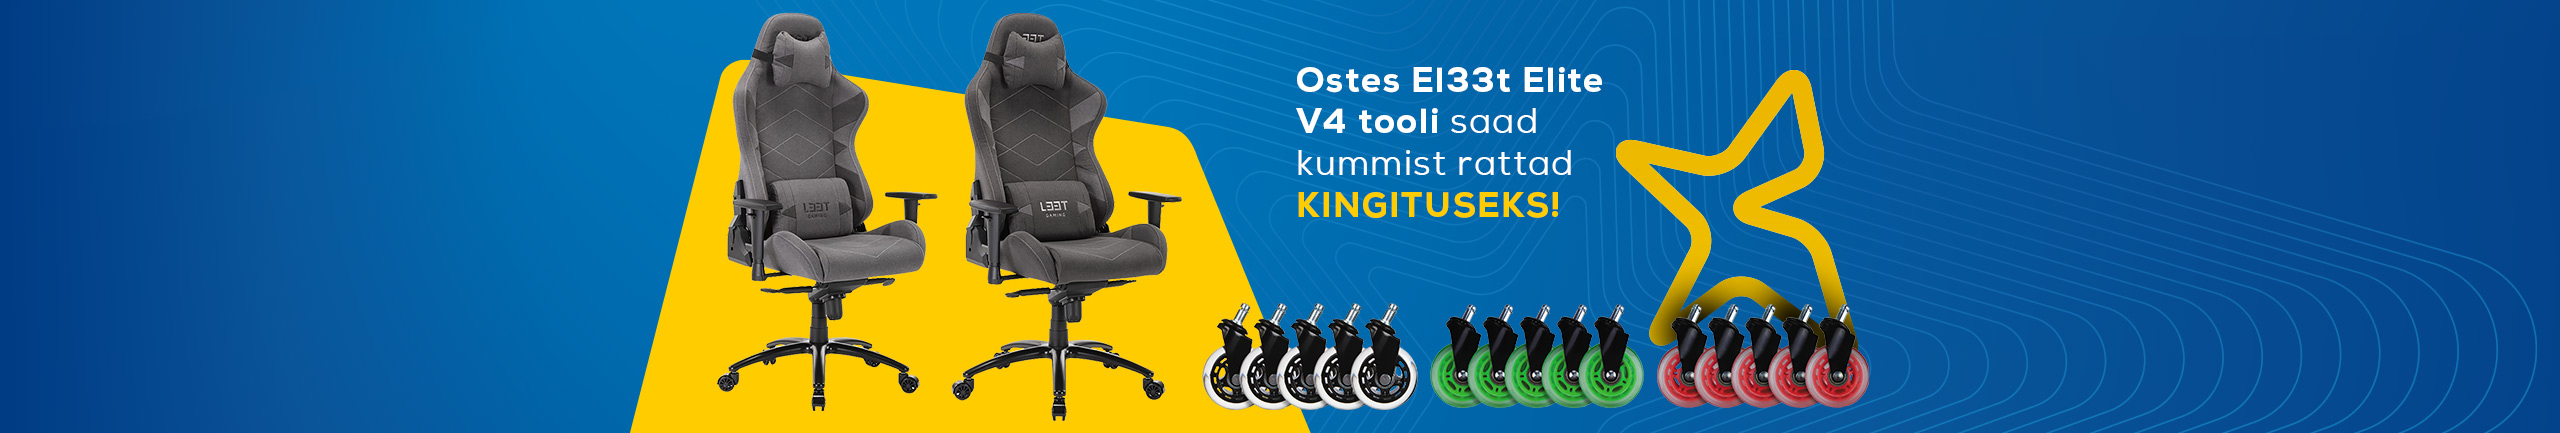 Buy El33t Elite v4 chair and get rubber wheels as a complimentary gift!